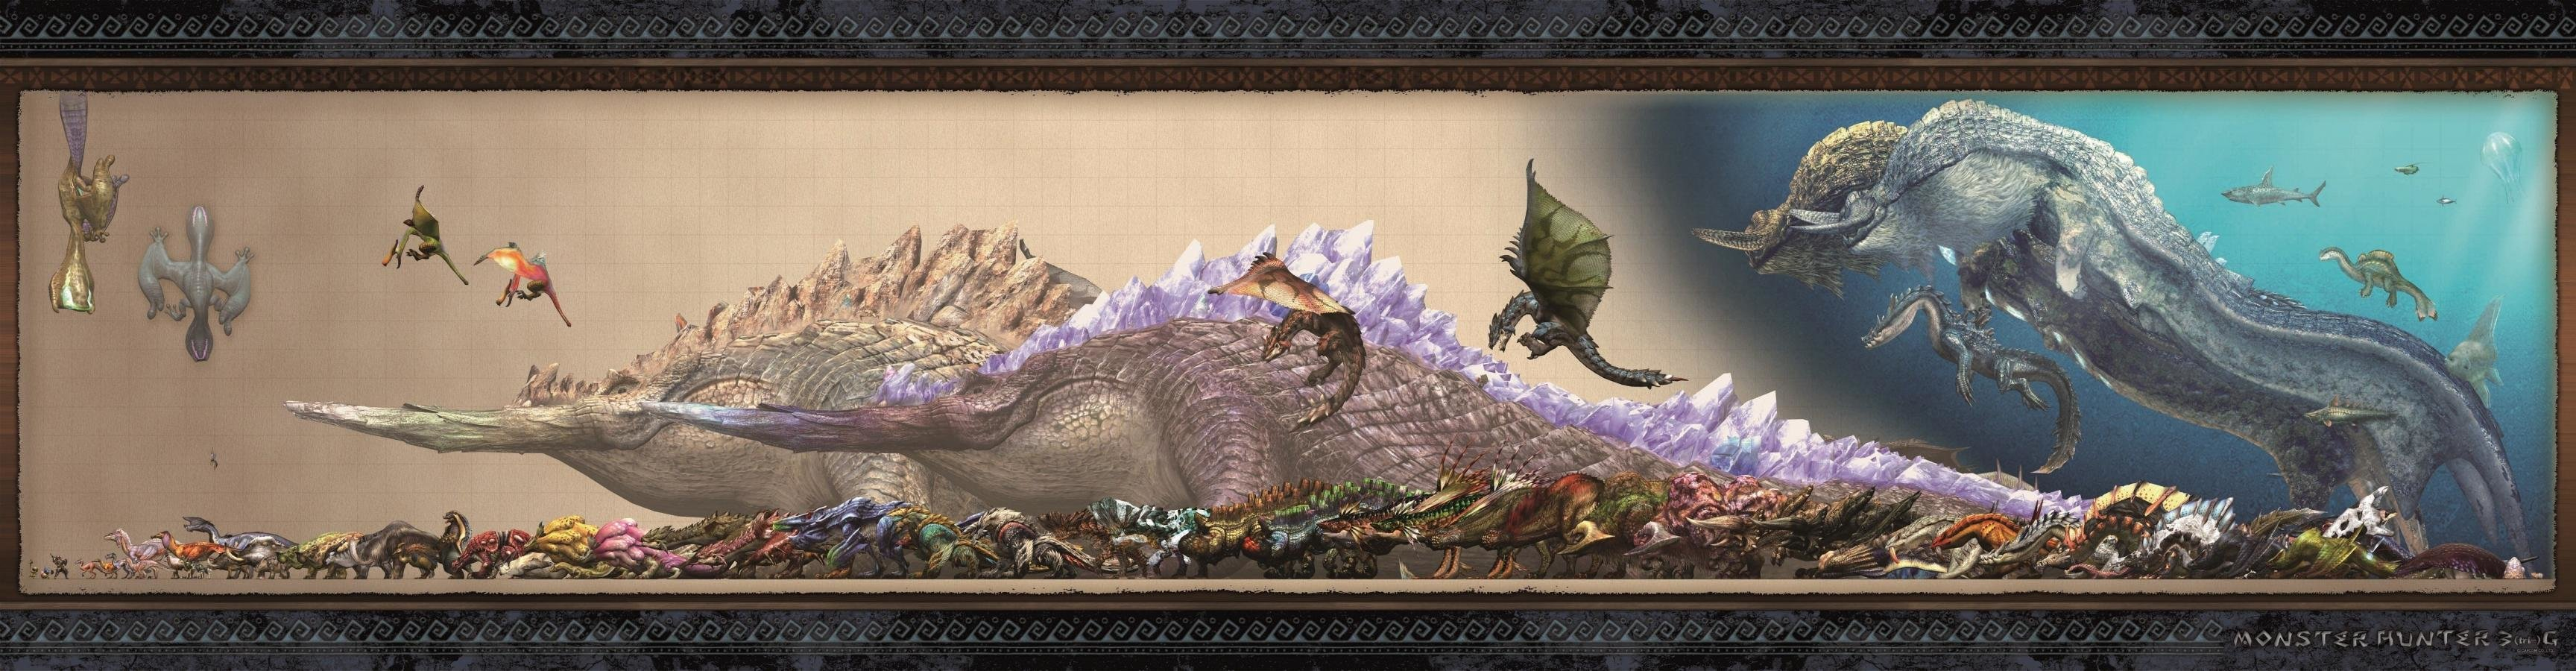 Best Monster Hunter wallpaper ID:294463 for High Resolution triple screen 3456x900 desktop